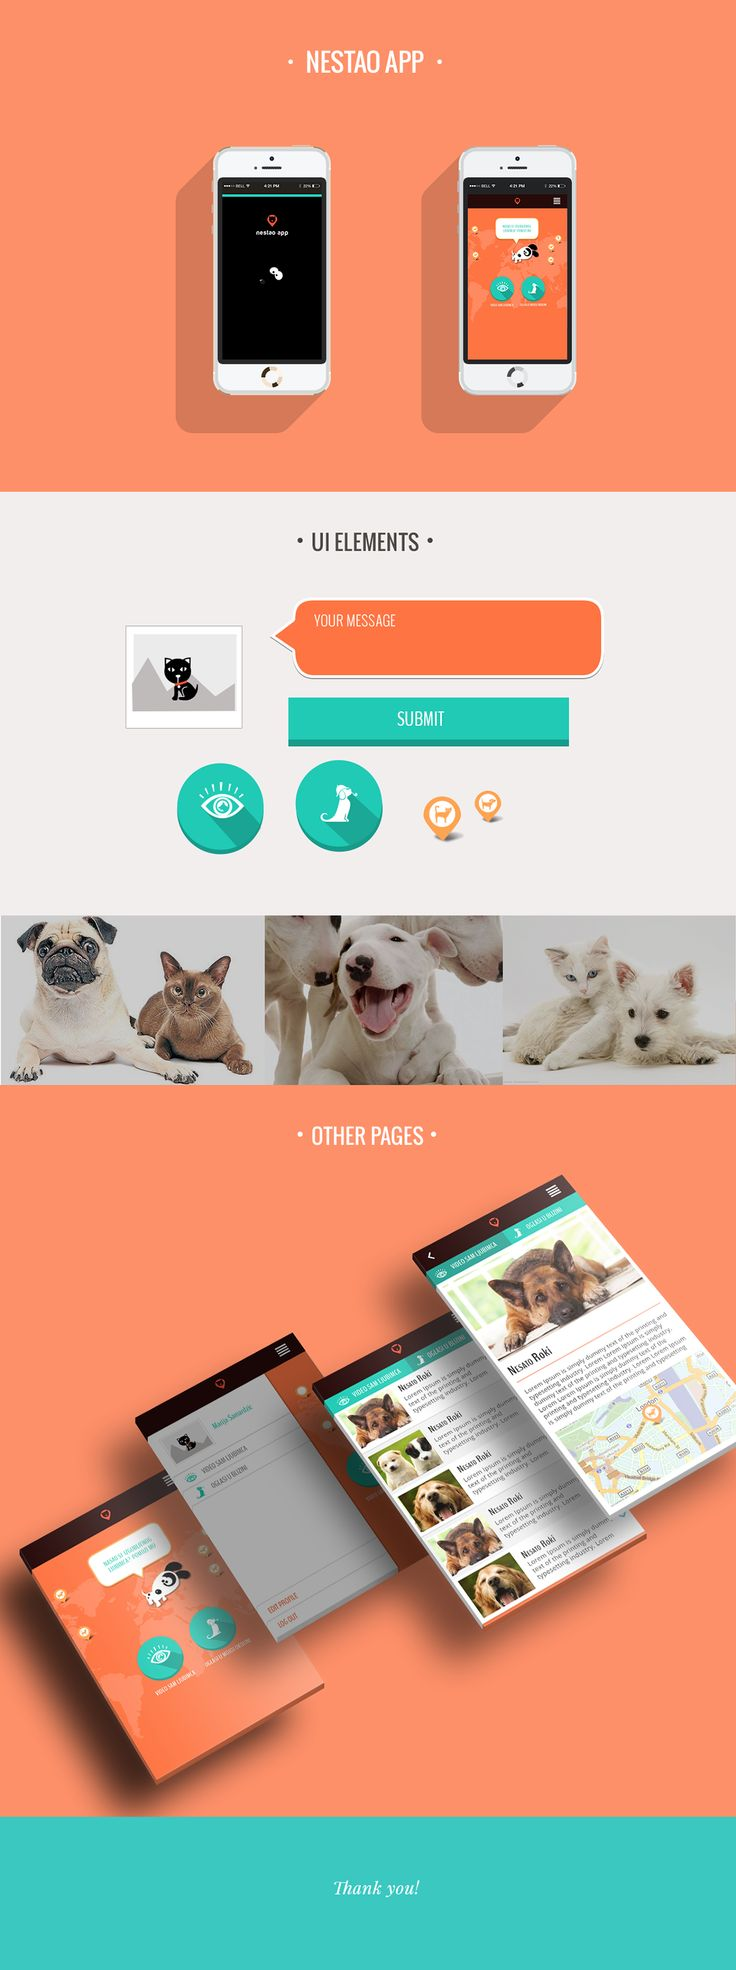 Nestao a mobile app for lost pets on Behance